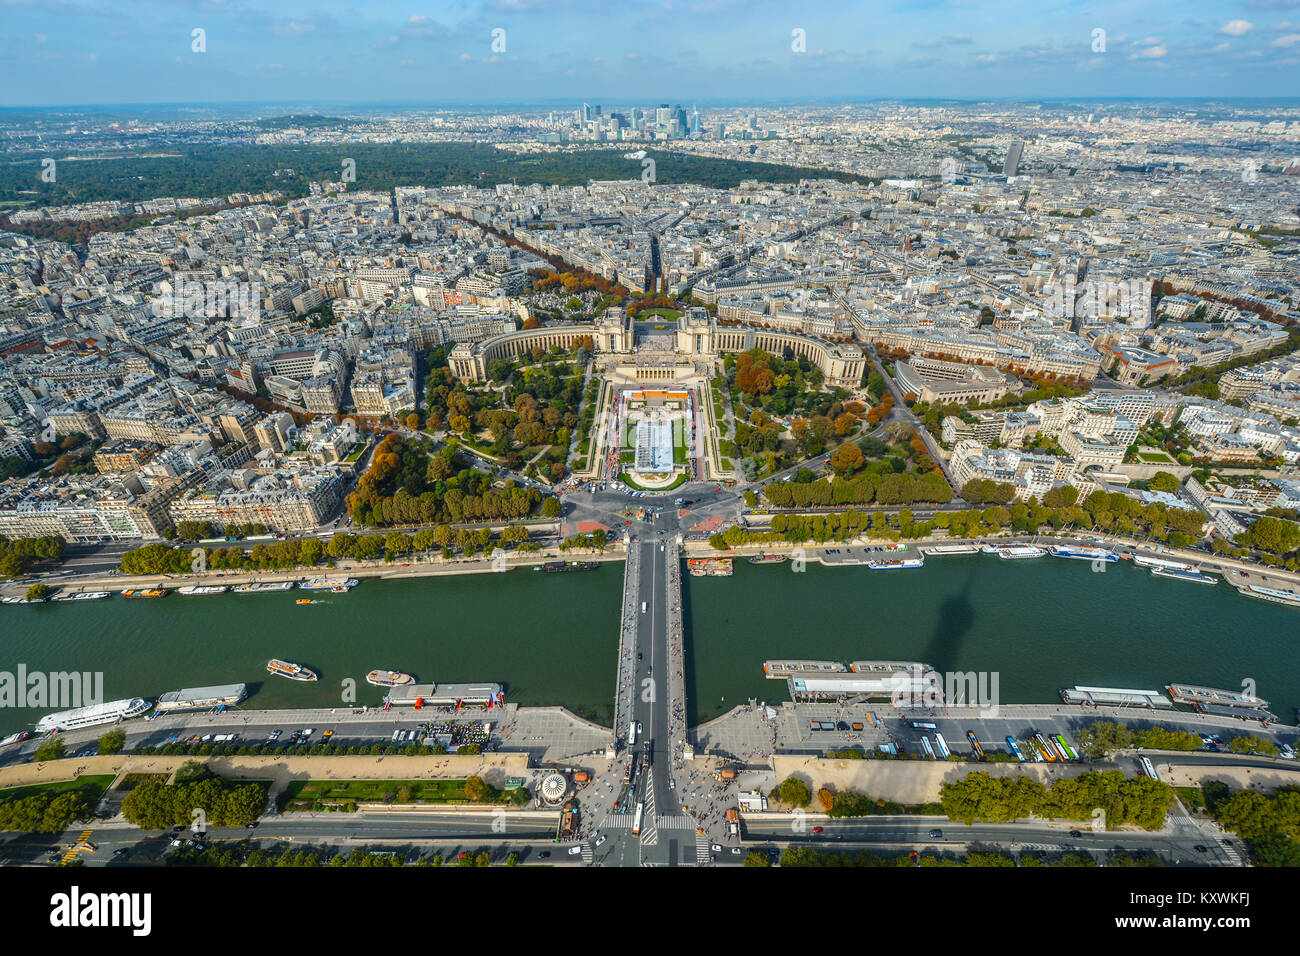 View of the River Seine, Trocadero and Paris from the platform of the Eiffel Tower in Paris France in early autumn - Stock Image